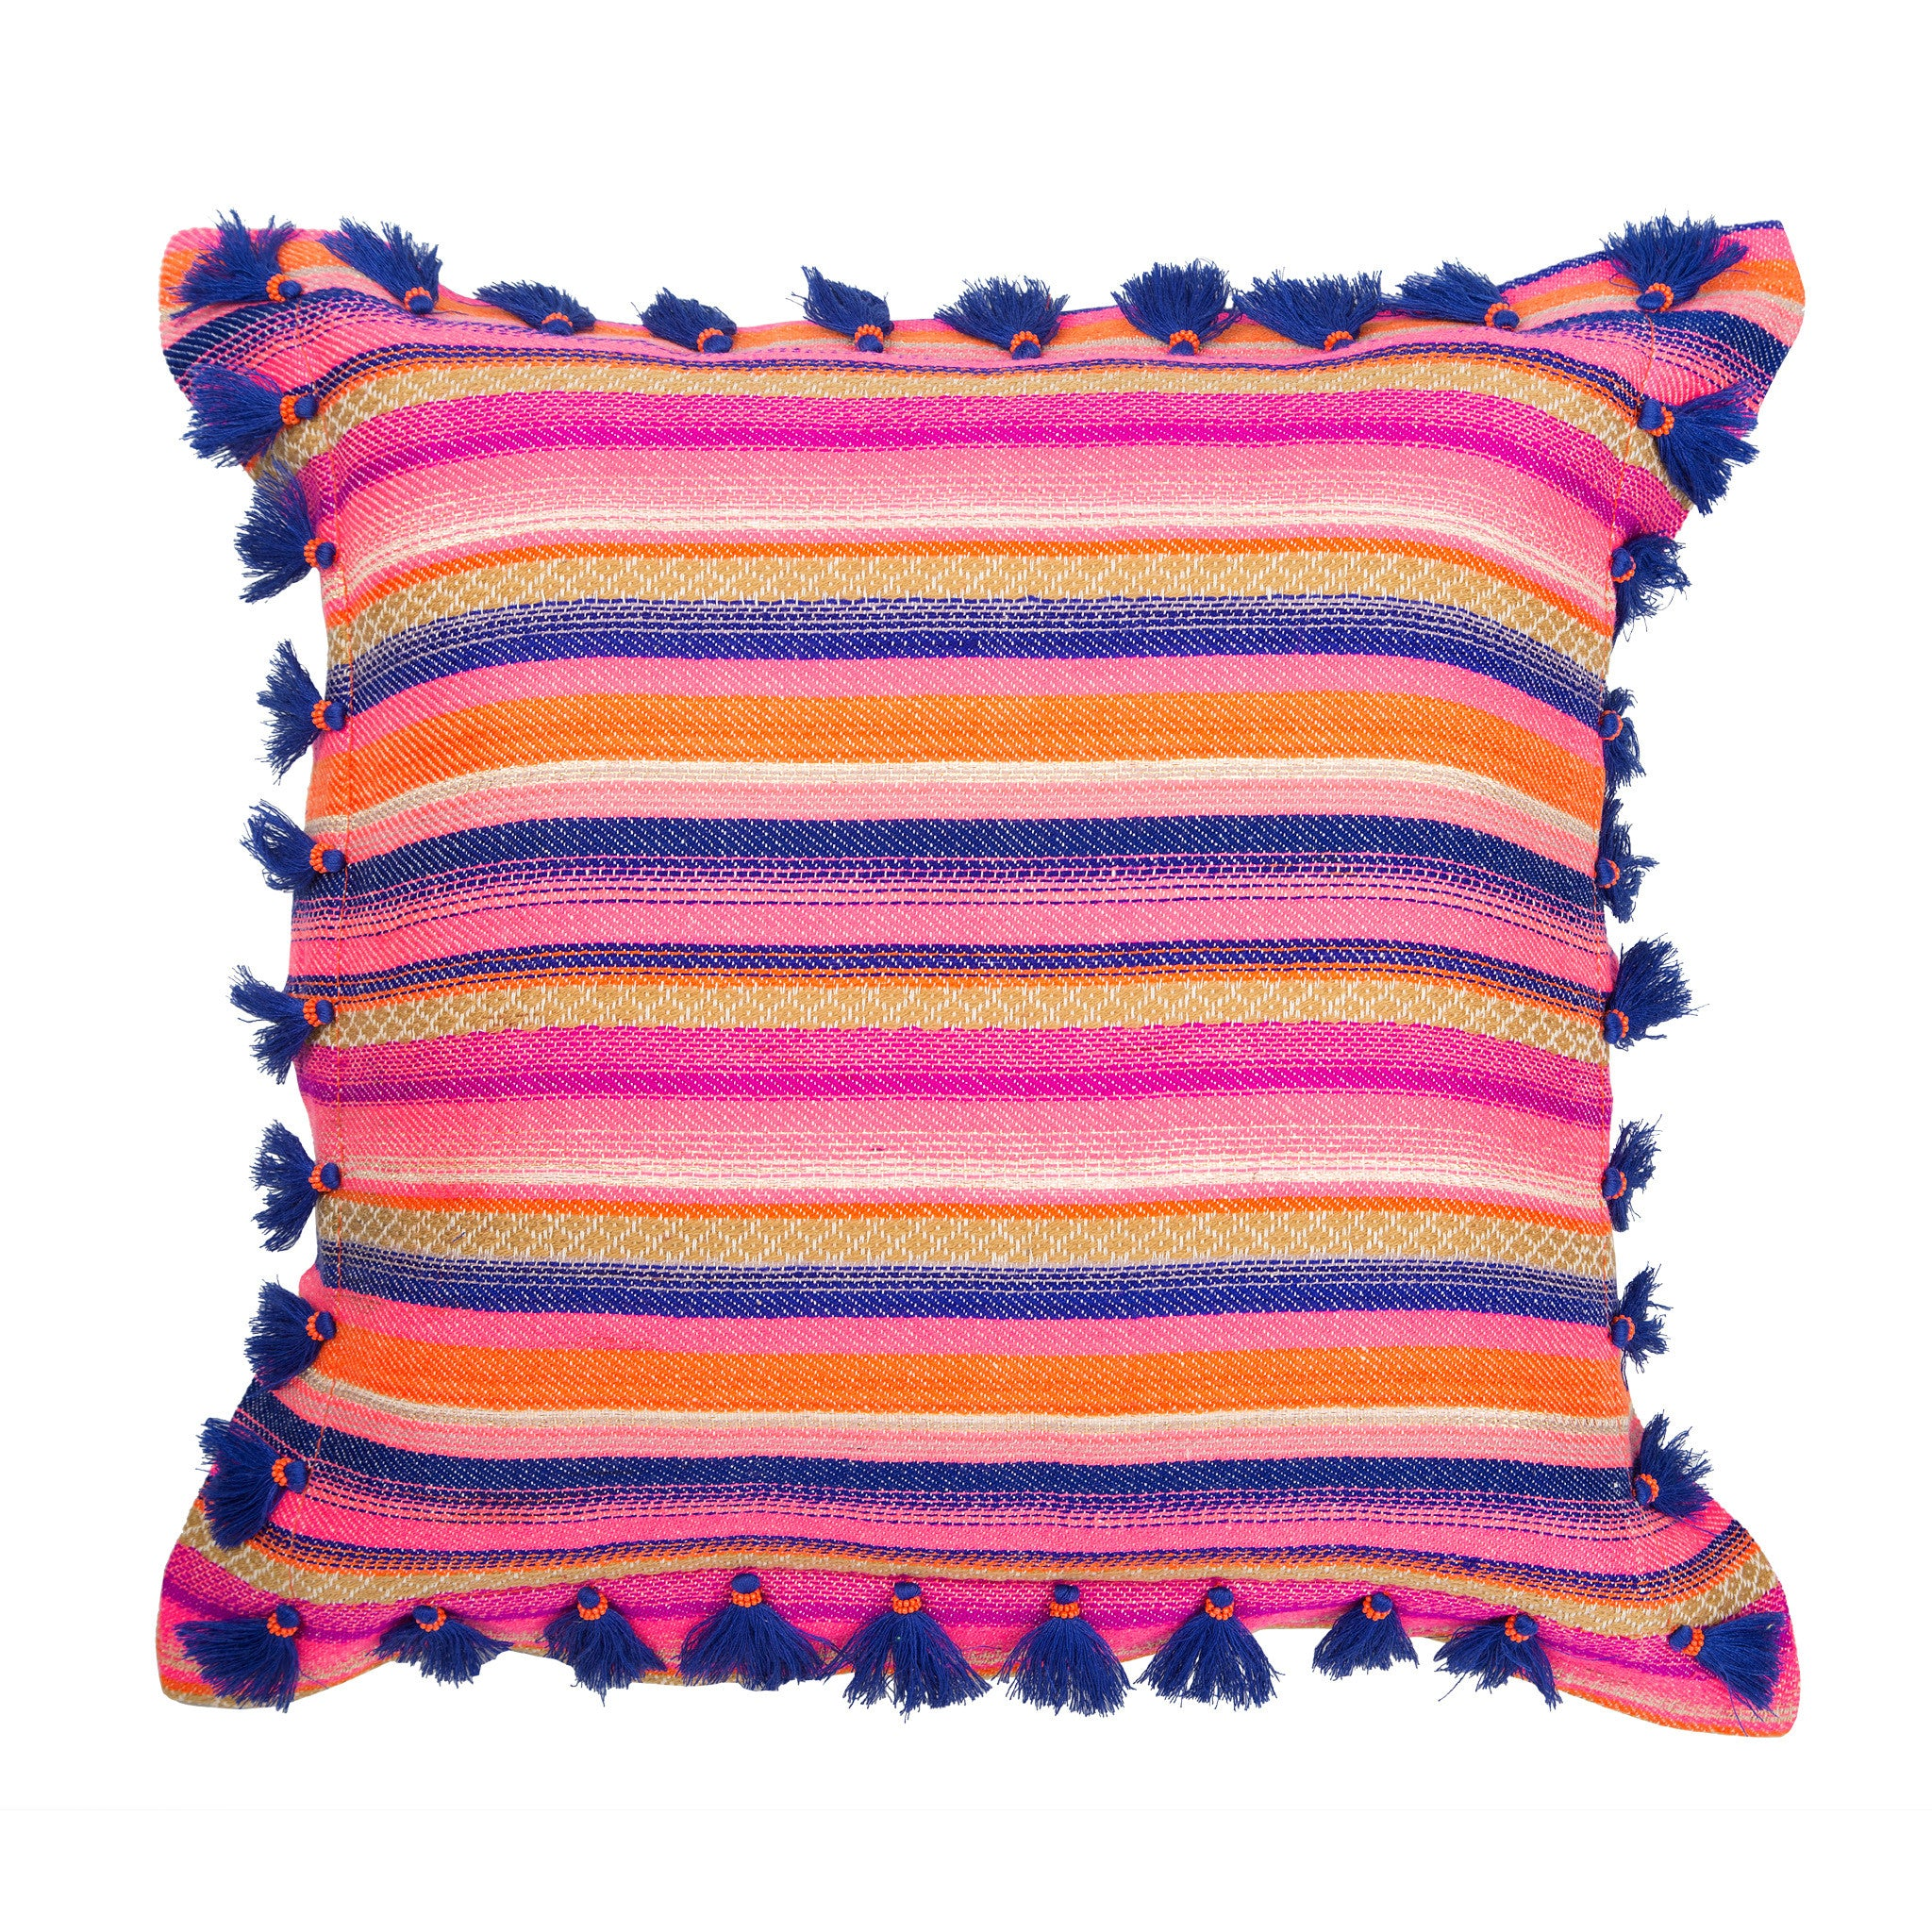 Bedouin-style orange cotton tasselled cushion - Bivain - 1